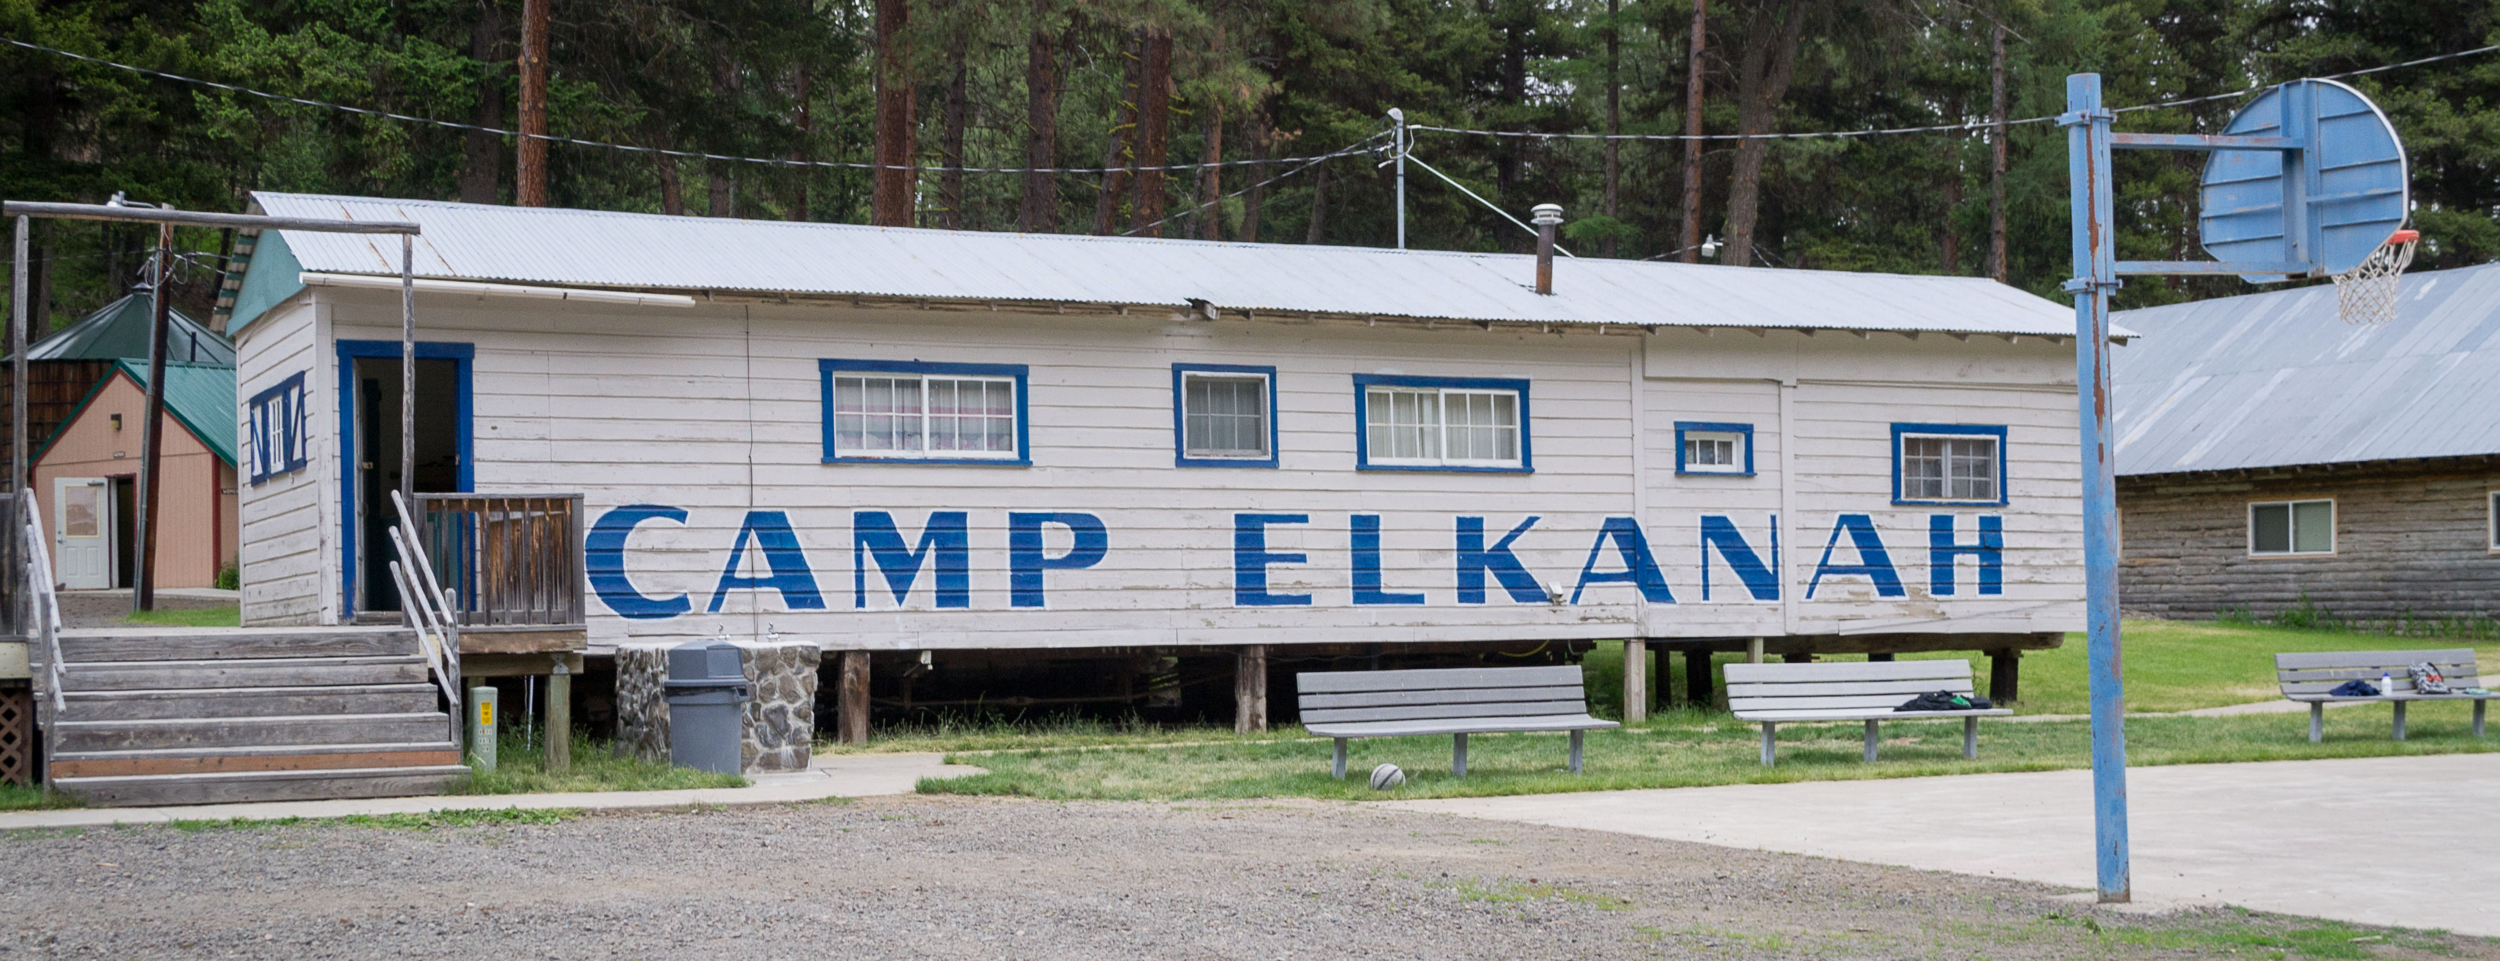 Camp Elkanah - Gospel-Centered Camping